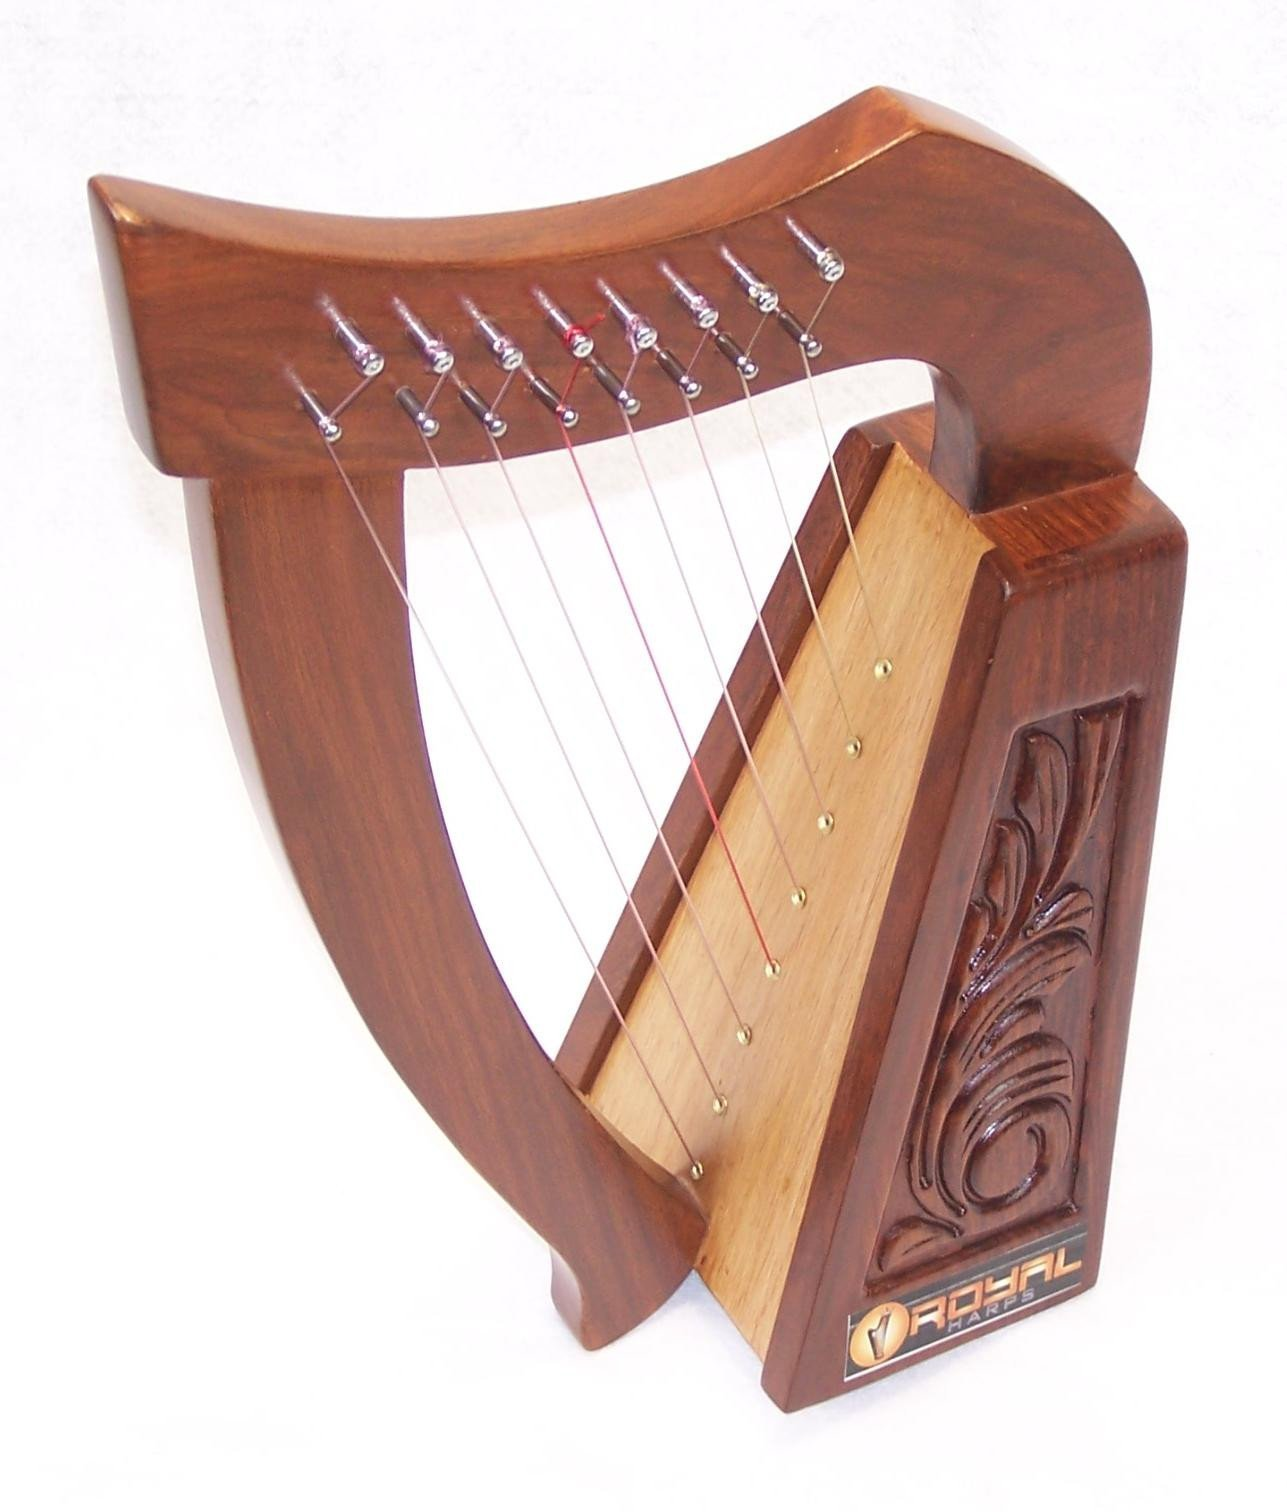 19 Inch Tall Celtic Irish Rose Harp 8 Strings Solid Wood Great for Children New